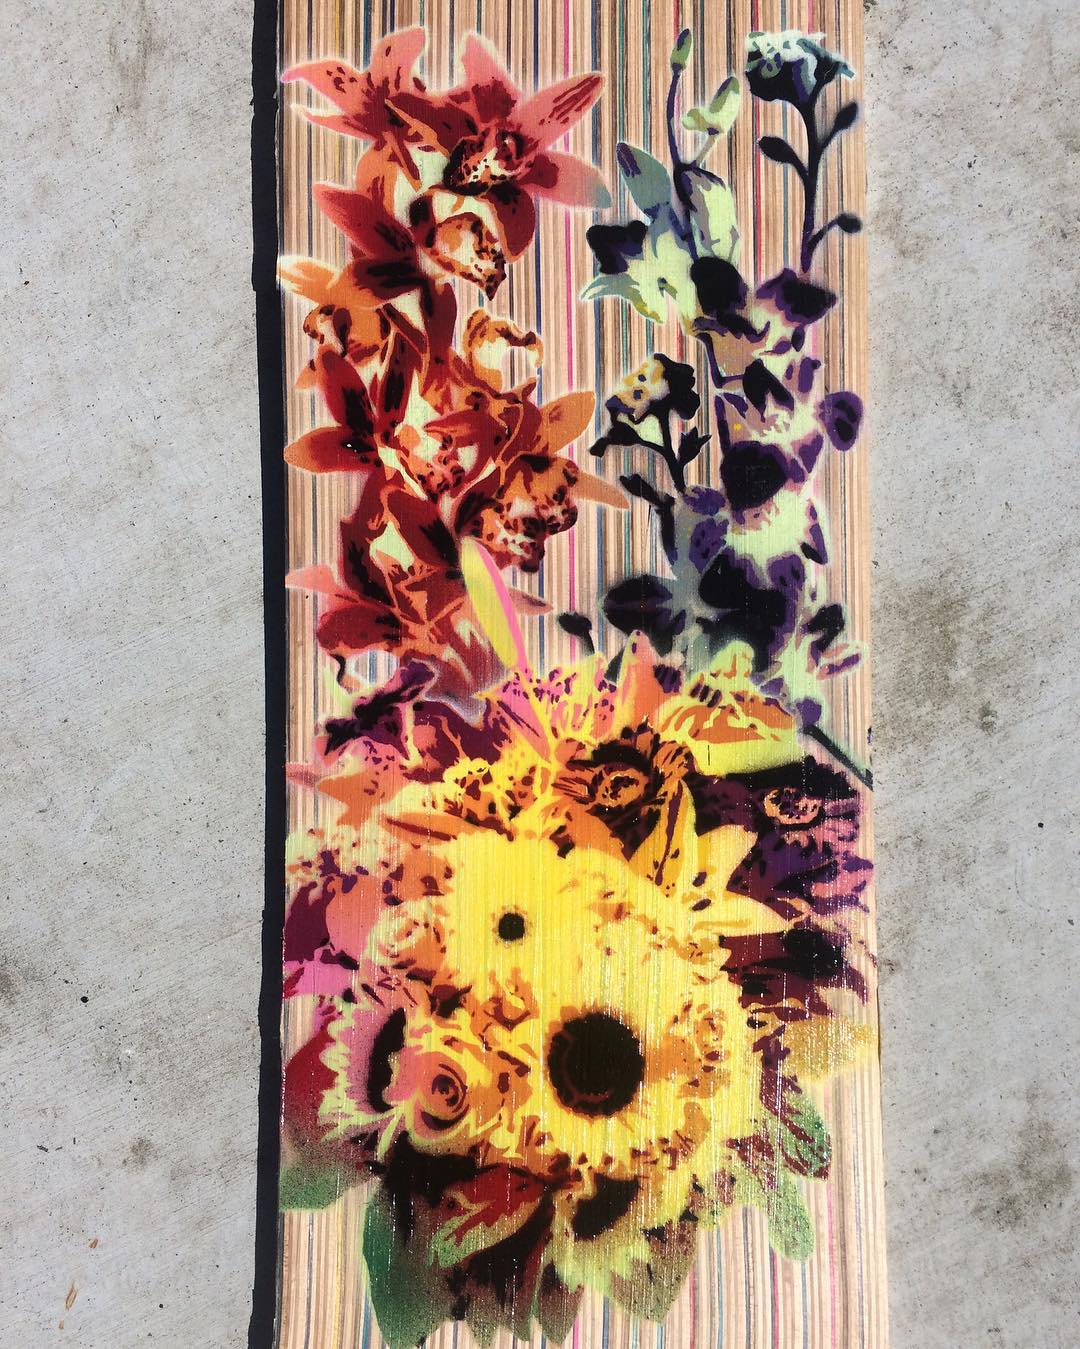 Our friend @porkchopbrand stenciled this beautiful piece on one of our recycled skateboards using only spray paint. Check out his page for more amazing work. #recycledskateboards #irisskateboards #porkchopbrand